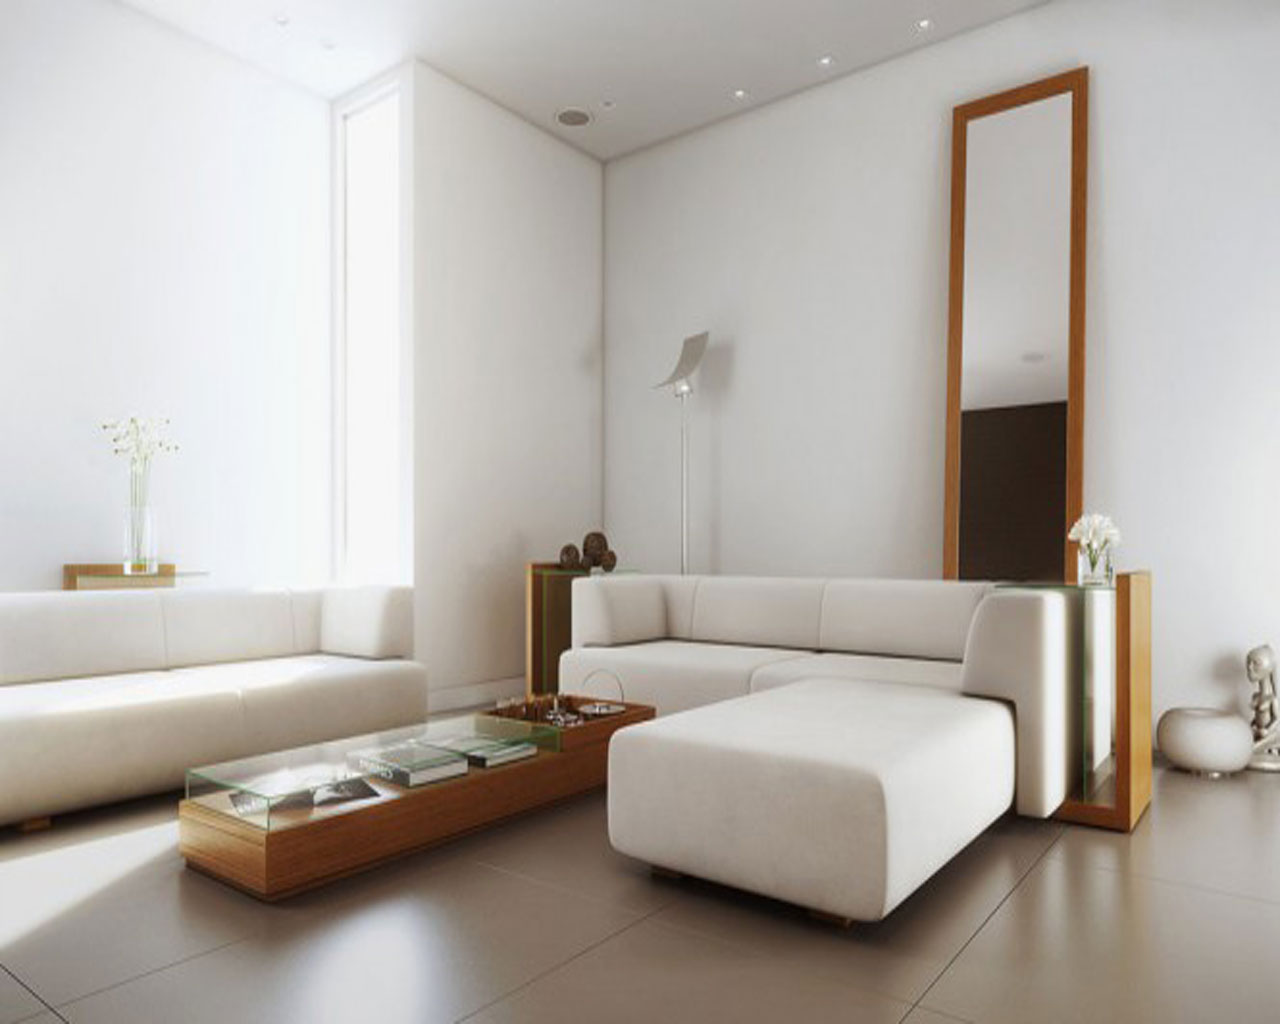 Simple living room designs dream house experience for Living room designs apartment